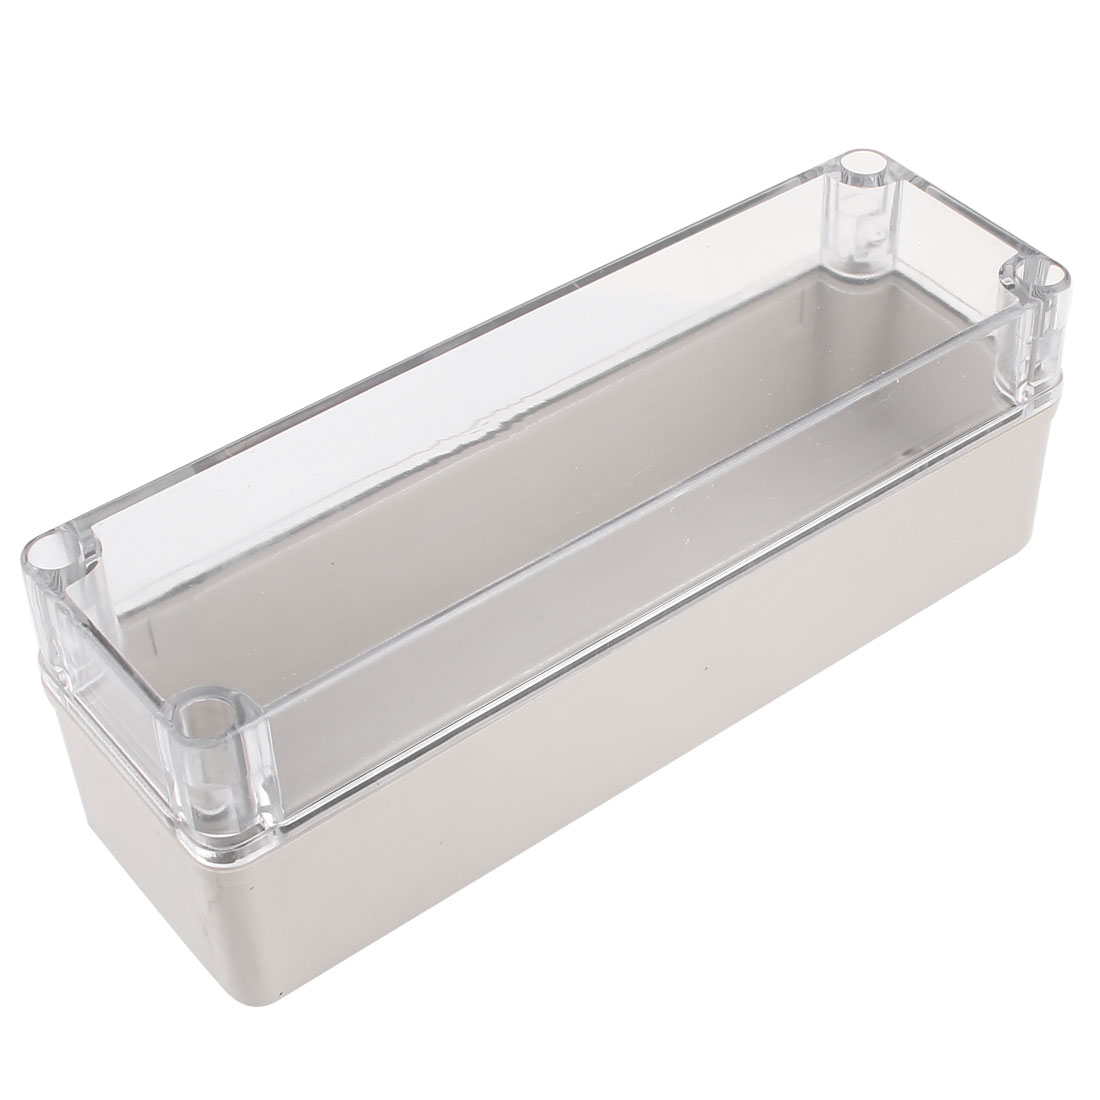 250mm x 80mm x 85mm Waterproof Plastic Sealed DIY Joint Electrical Junction Box